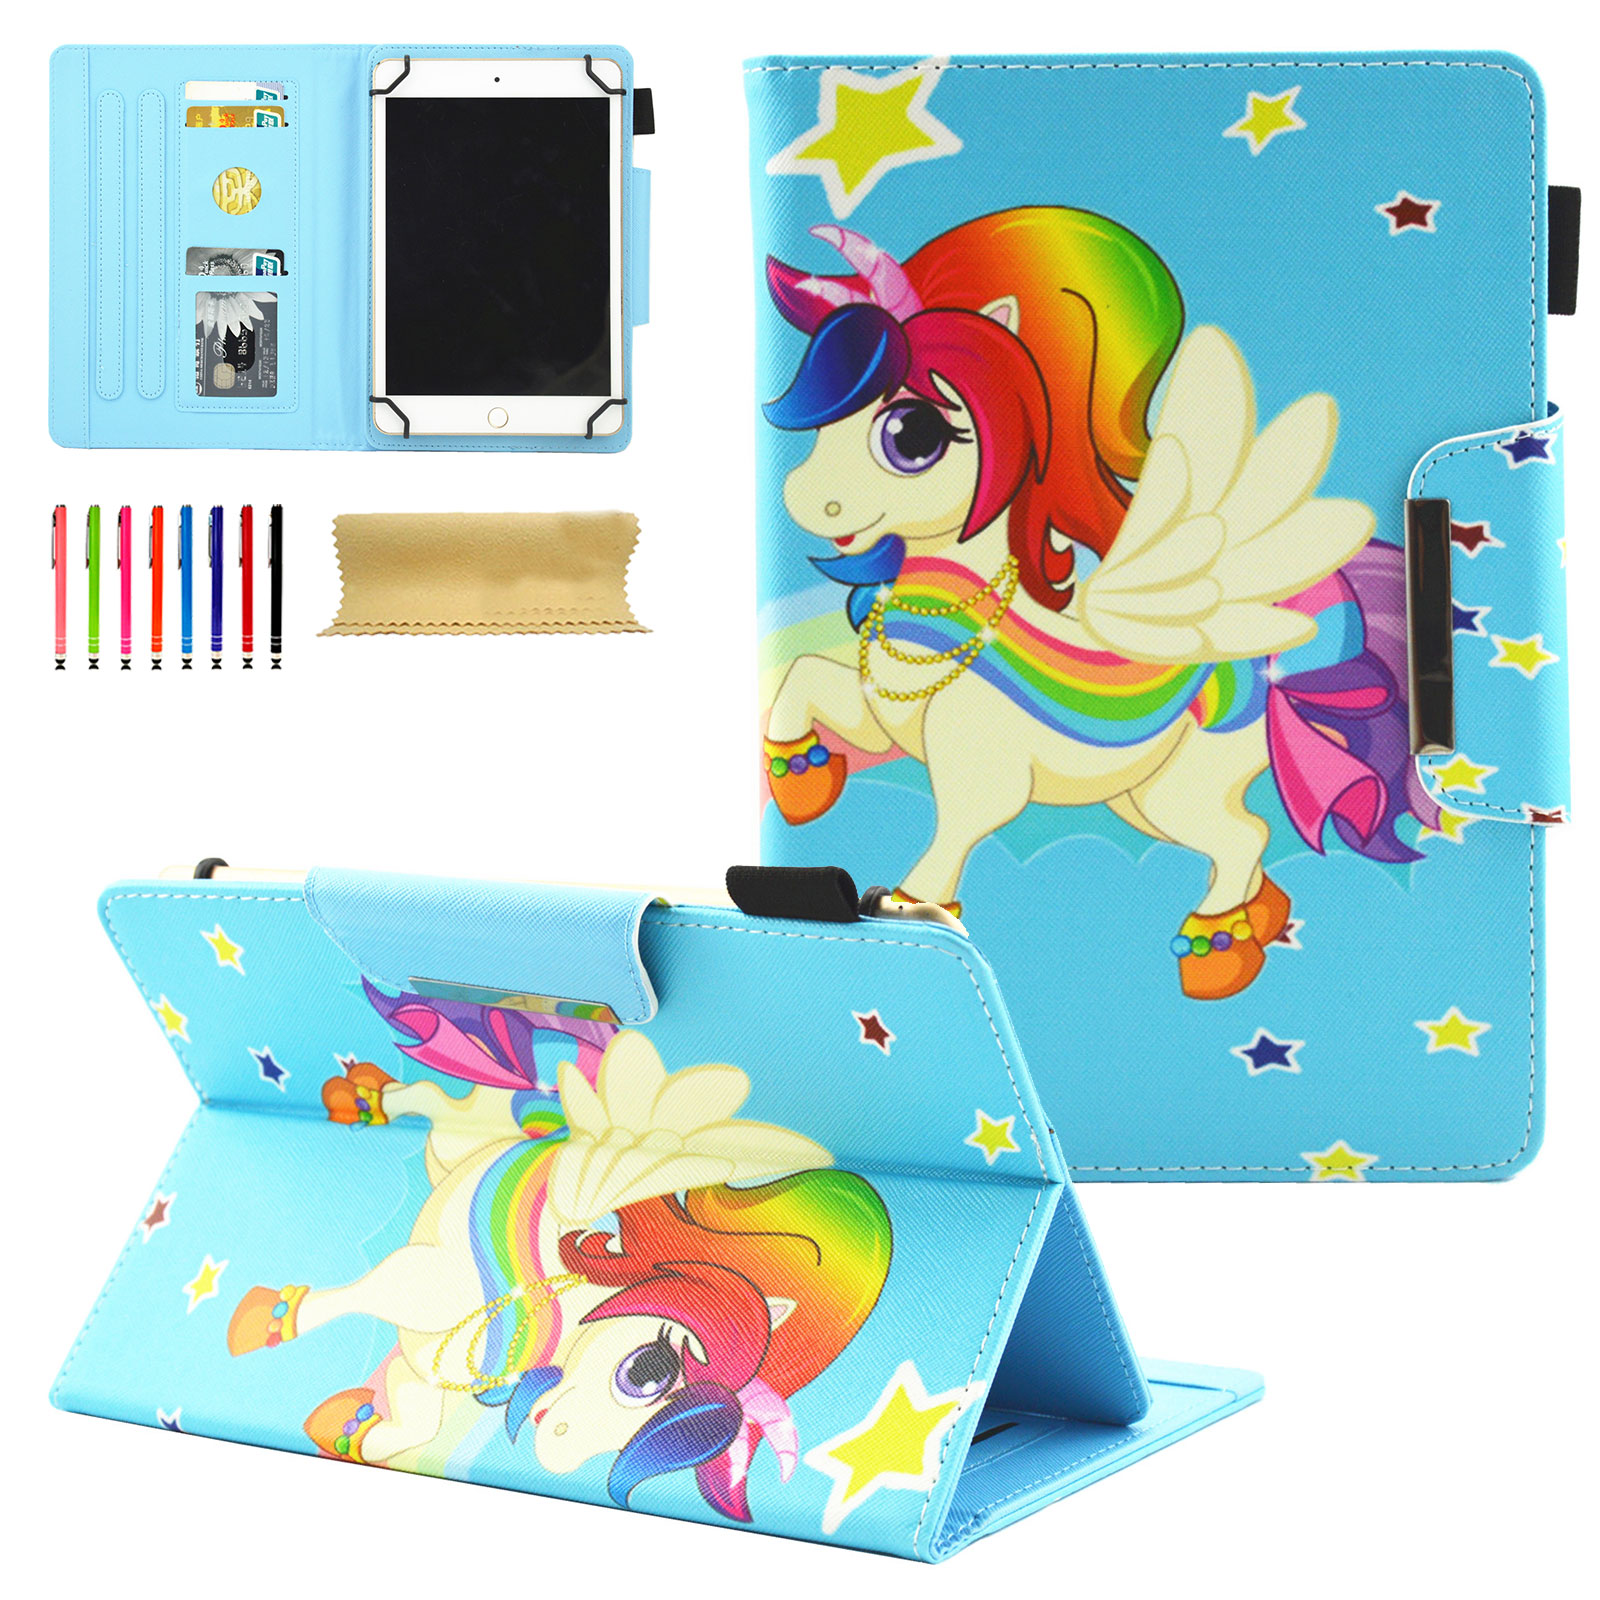 Universal 7 - 8 inch Tablet Case, Goodest Wallet Style Stand Cases and Covers for iPad Mini 1/2/3/4,Samsung Galaxy Tab E,Tab S2 8.0,Tab A,Tab 4 3,Kindle Fire HD 8 2017 2016,LG and More, Star Pony